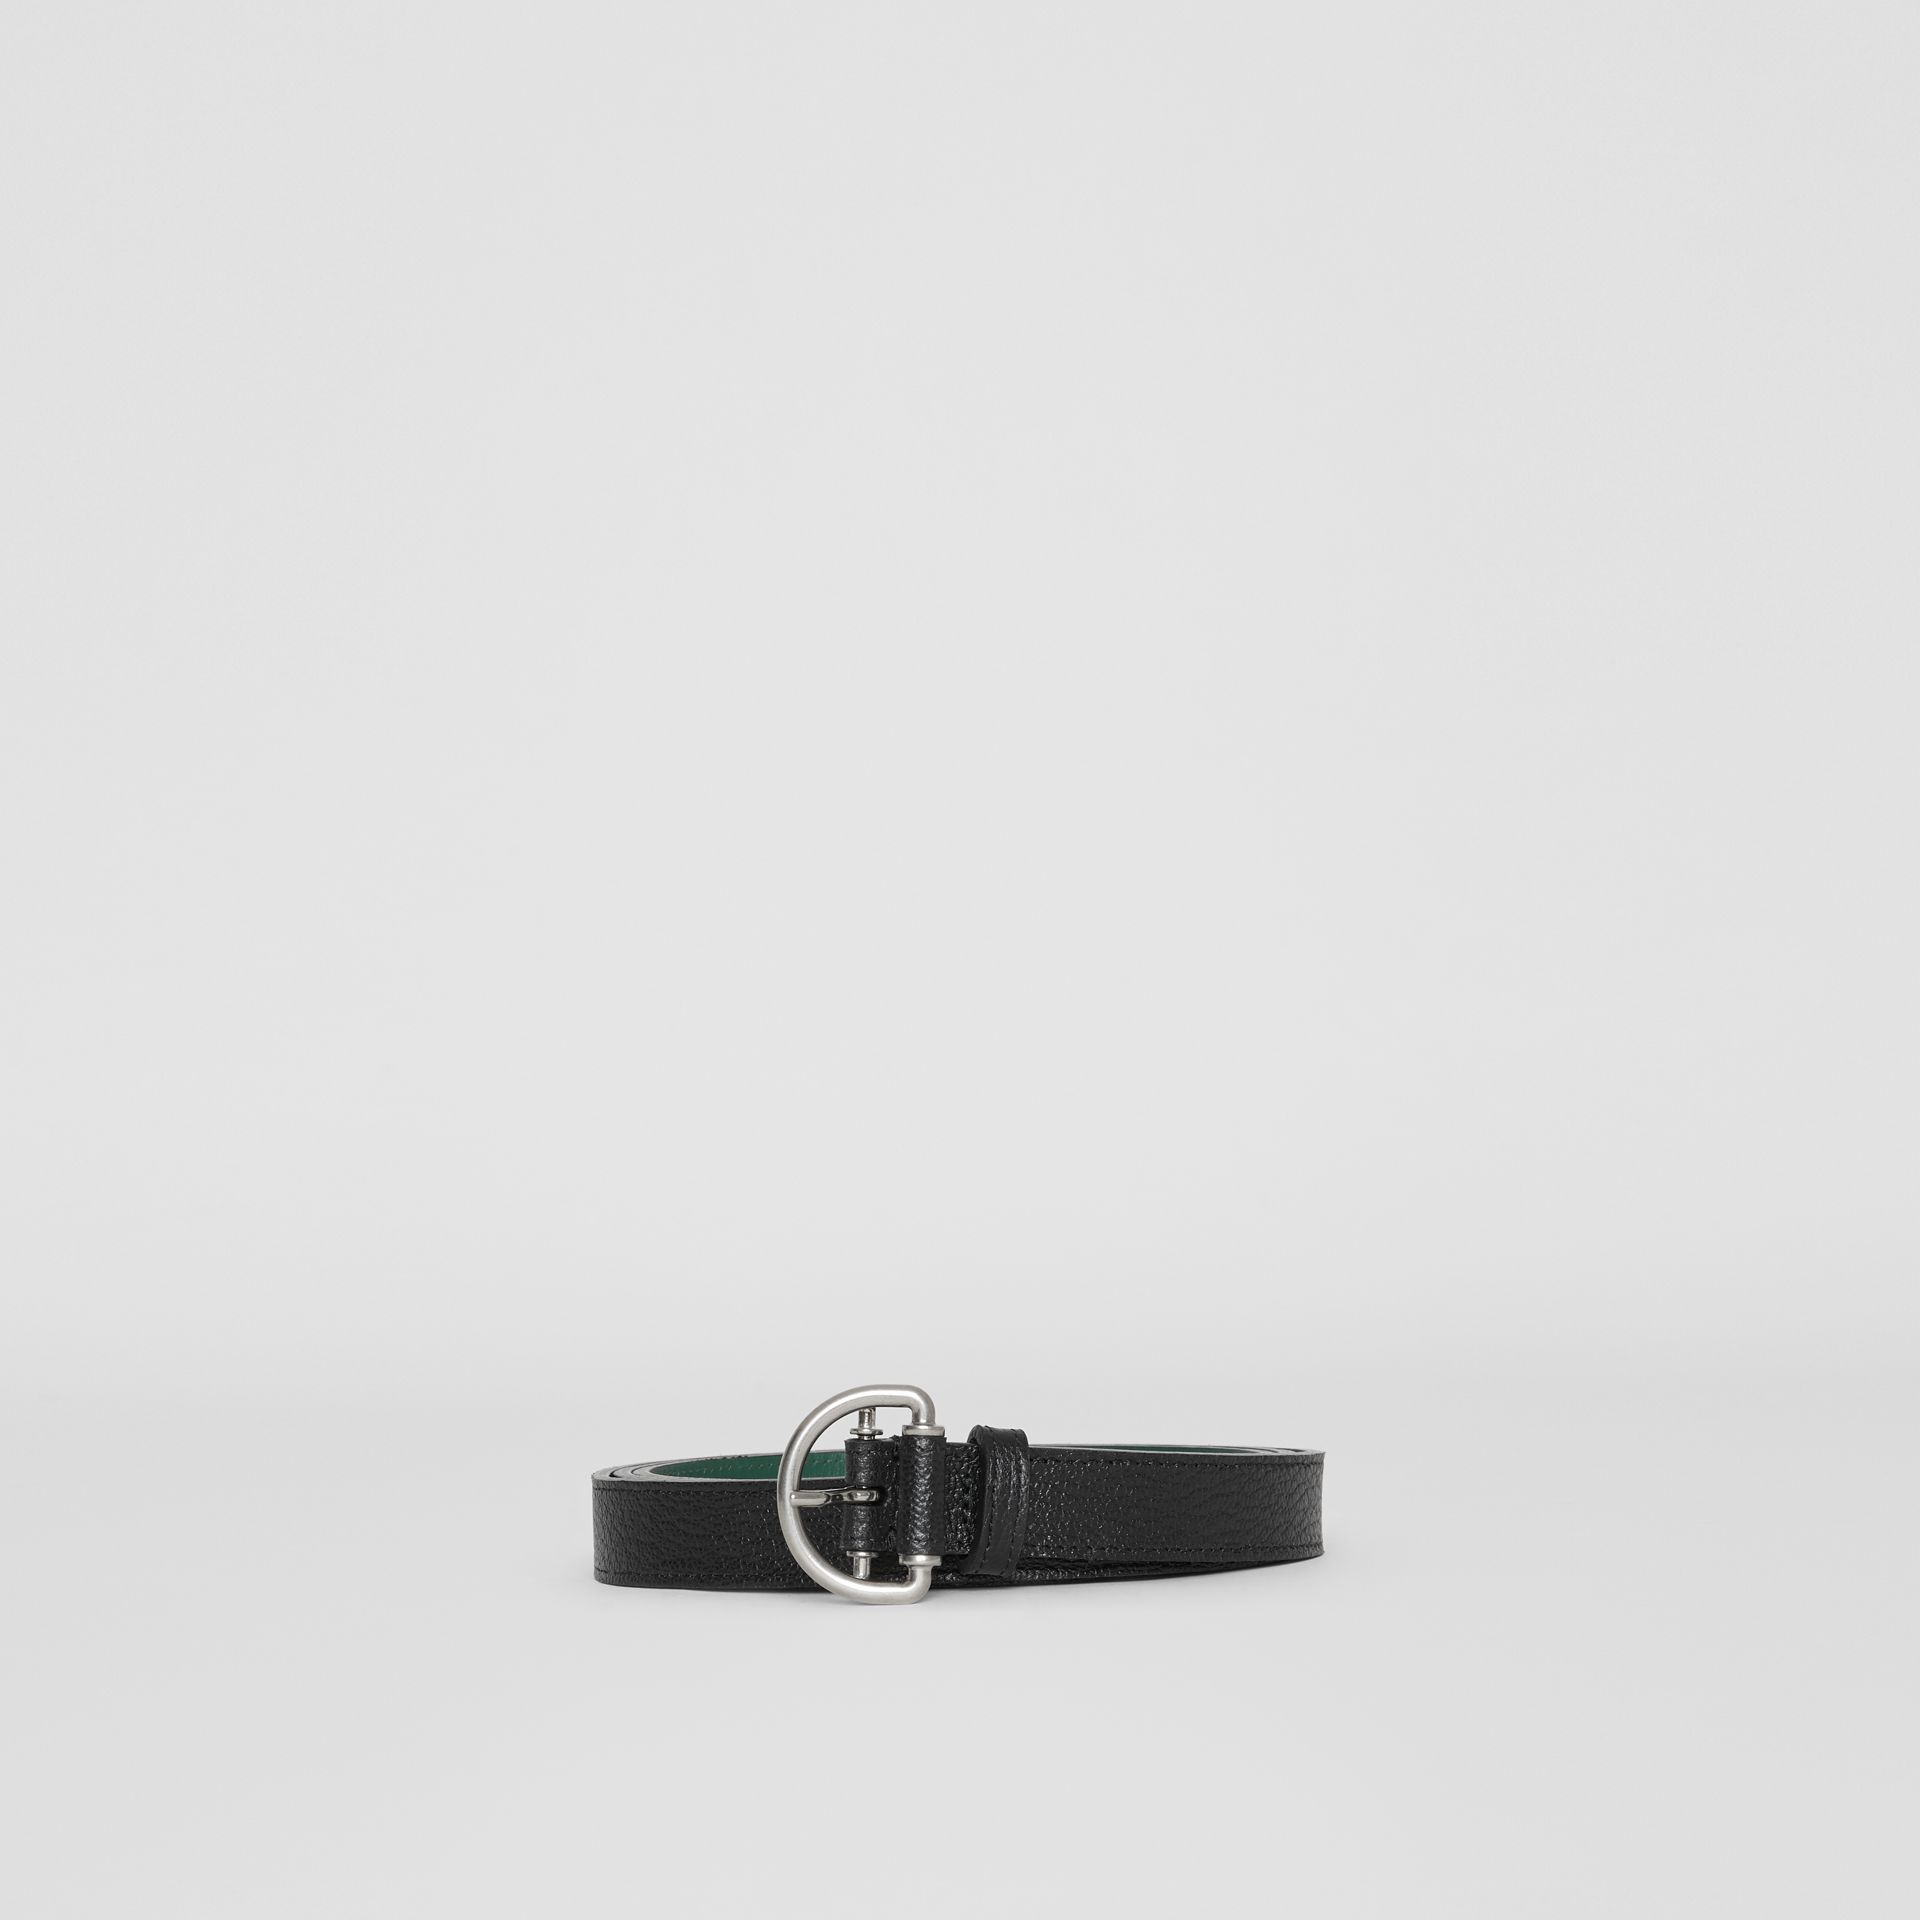 Grainy Leather D-ring Belt in Black/sea Green - Women | Burberry - gallery image 3